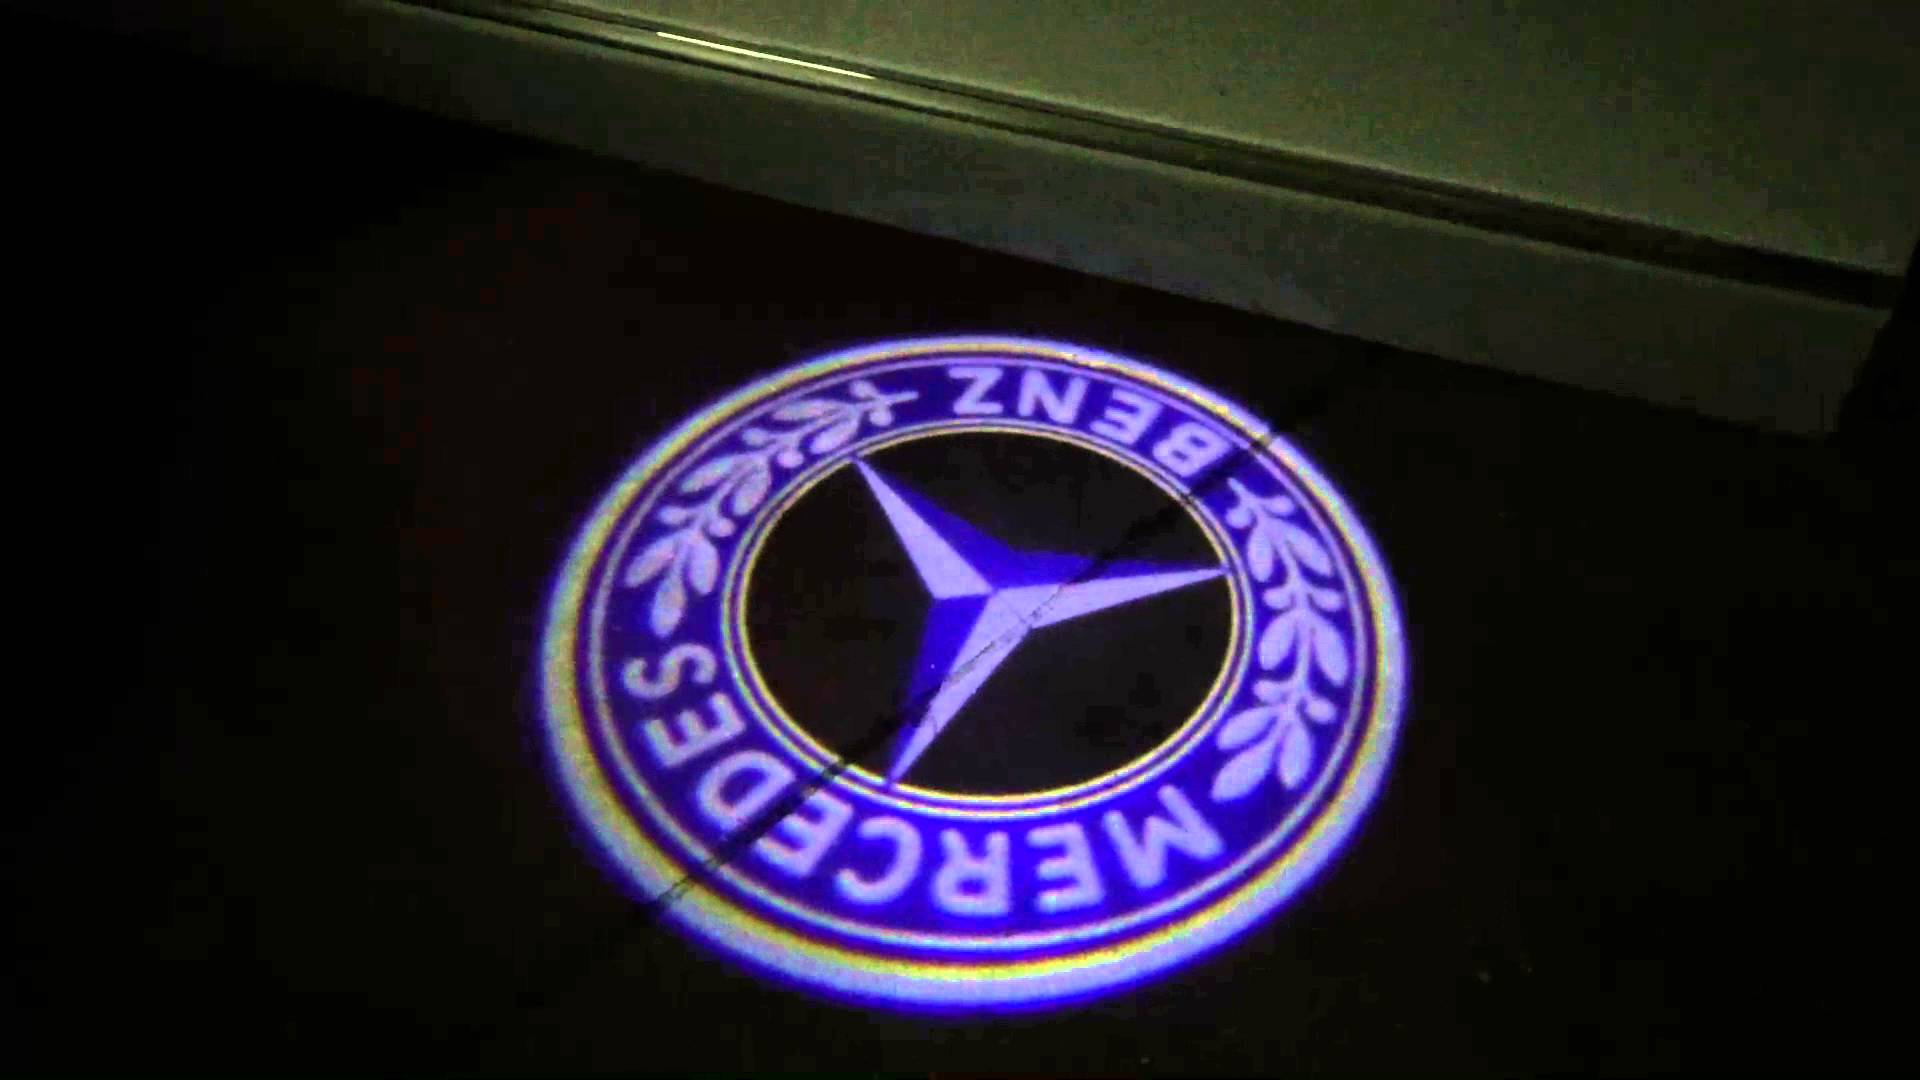 Mercedes Benz Light Up Logos